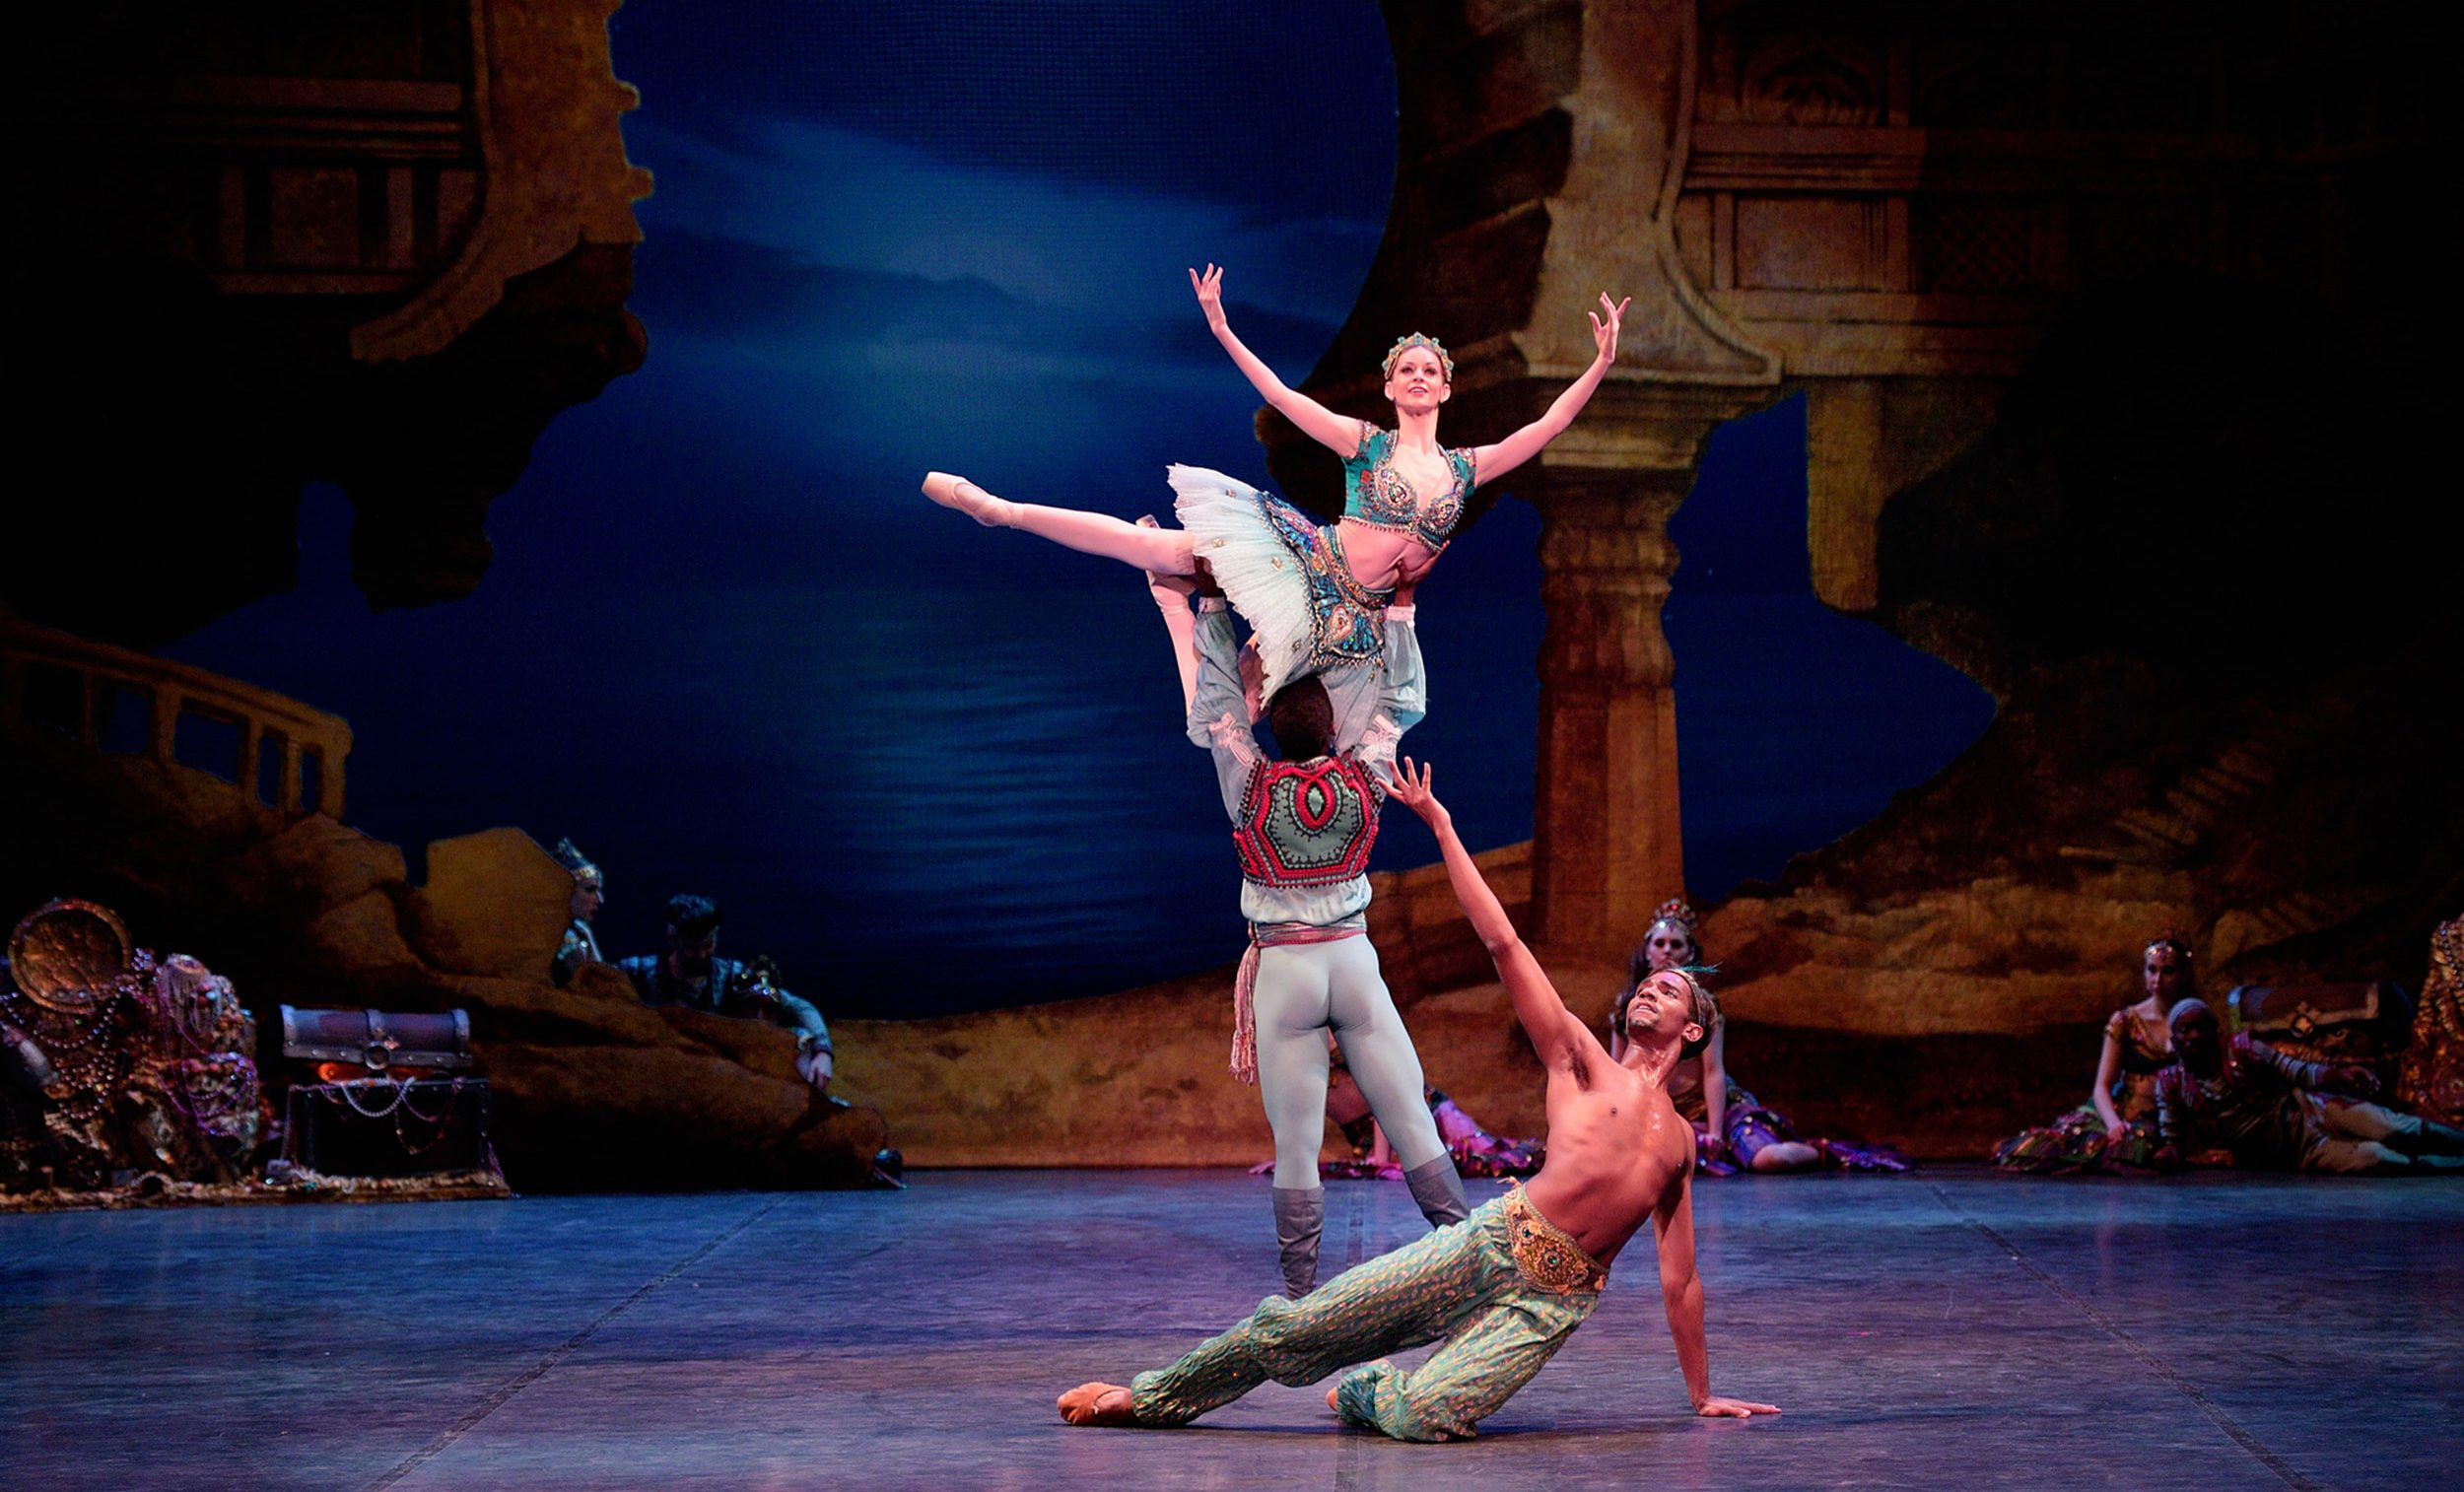 Laurretta Summerscales as Medora, Brooklyn Mack as Conrad, and Junor Souz as Ali in Le Corsaire © Laurent Liotardo